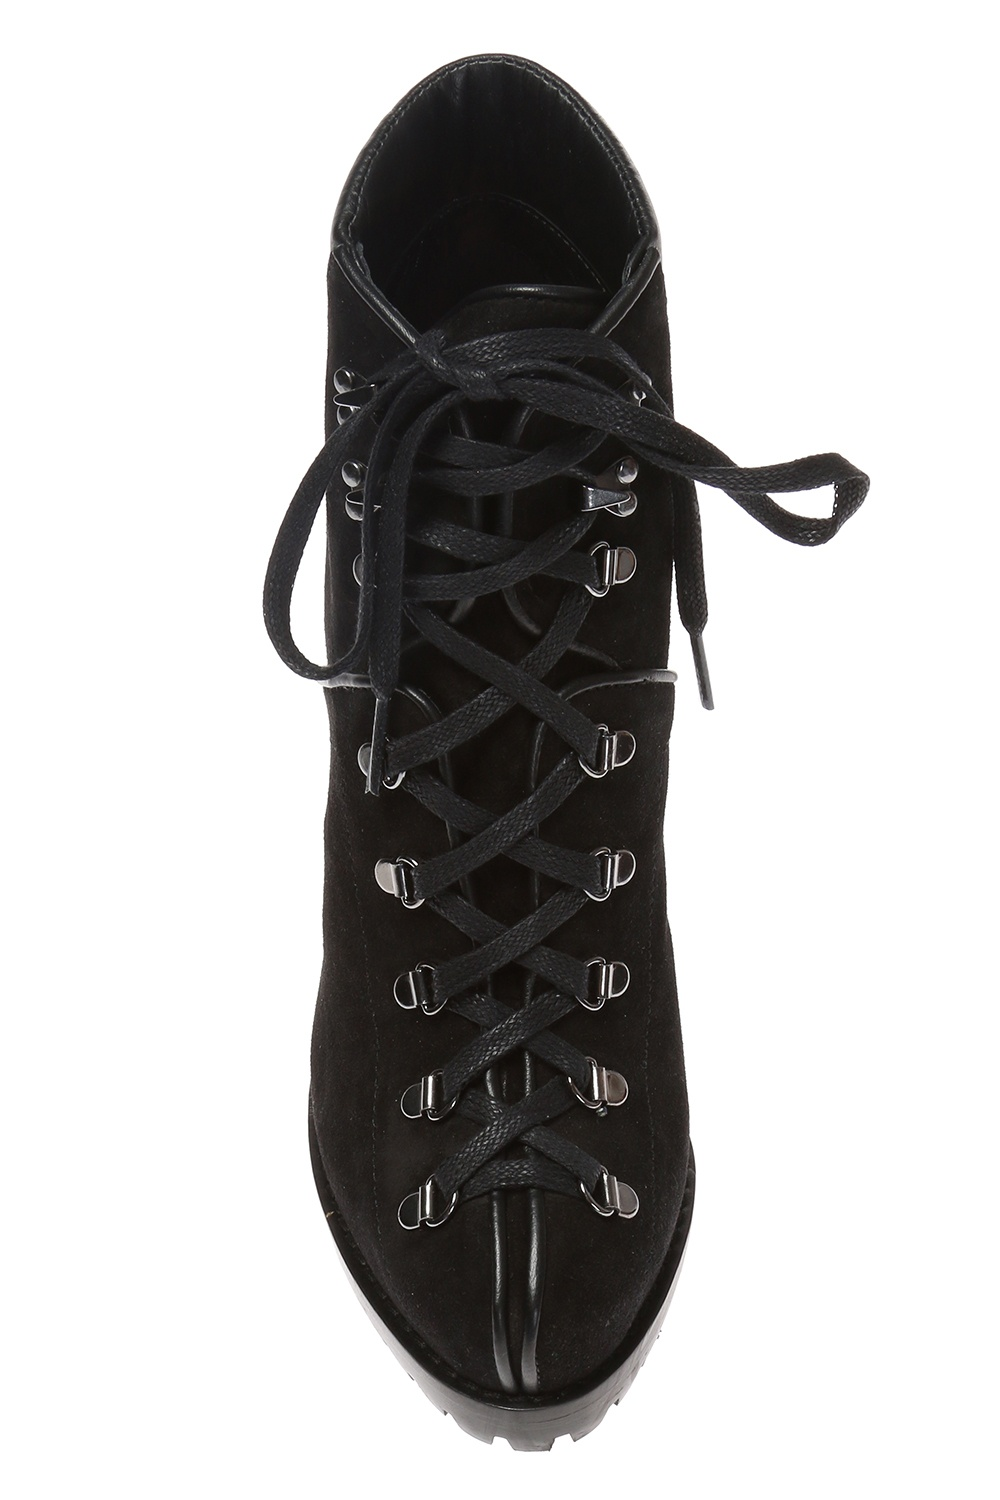 Alaia Lace-up heeled boots